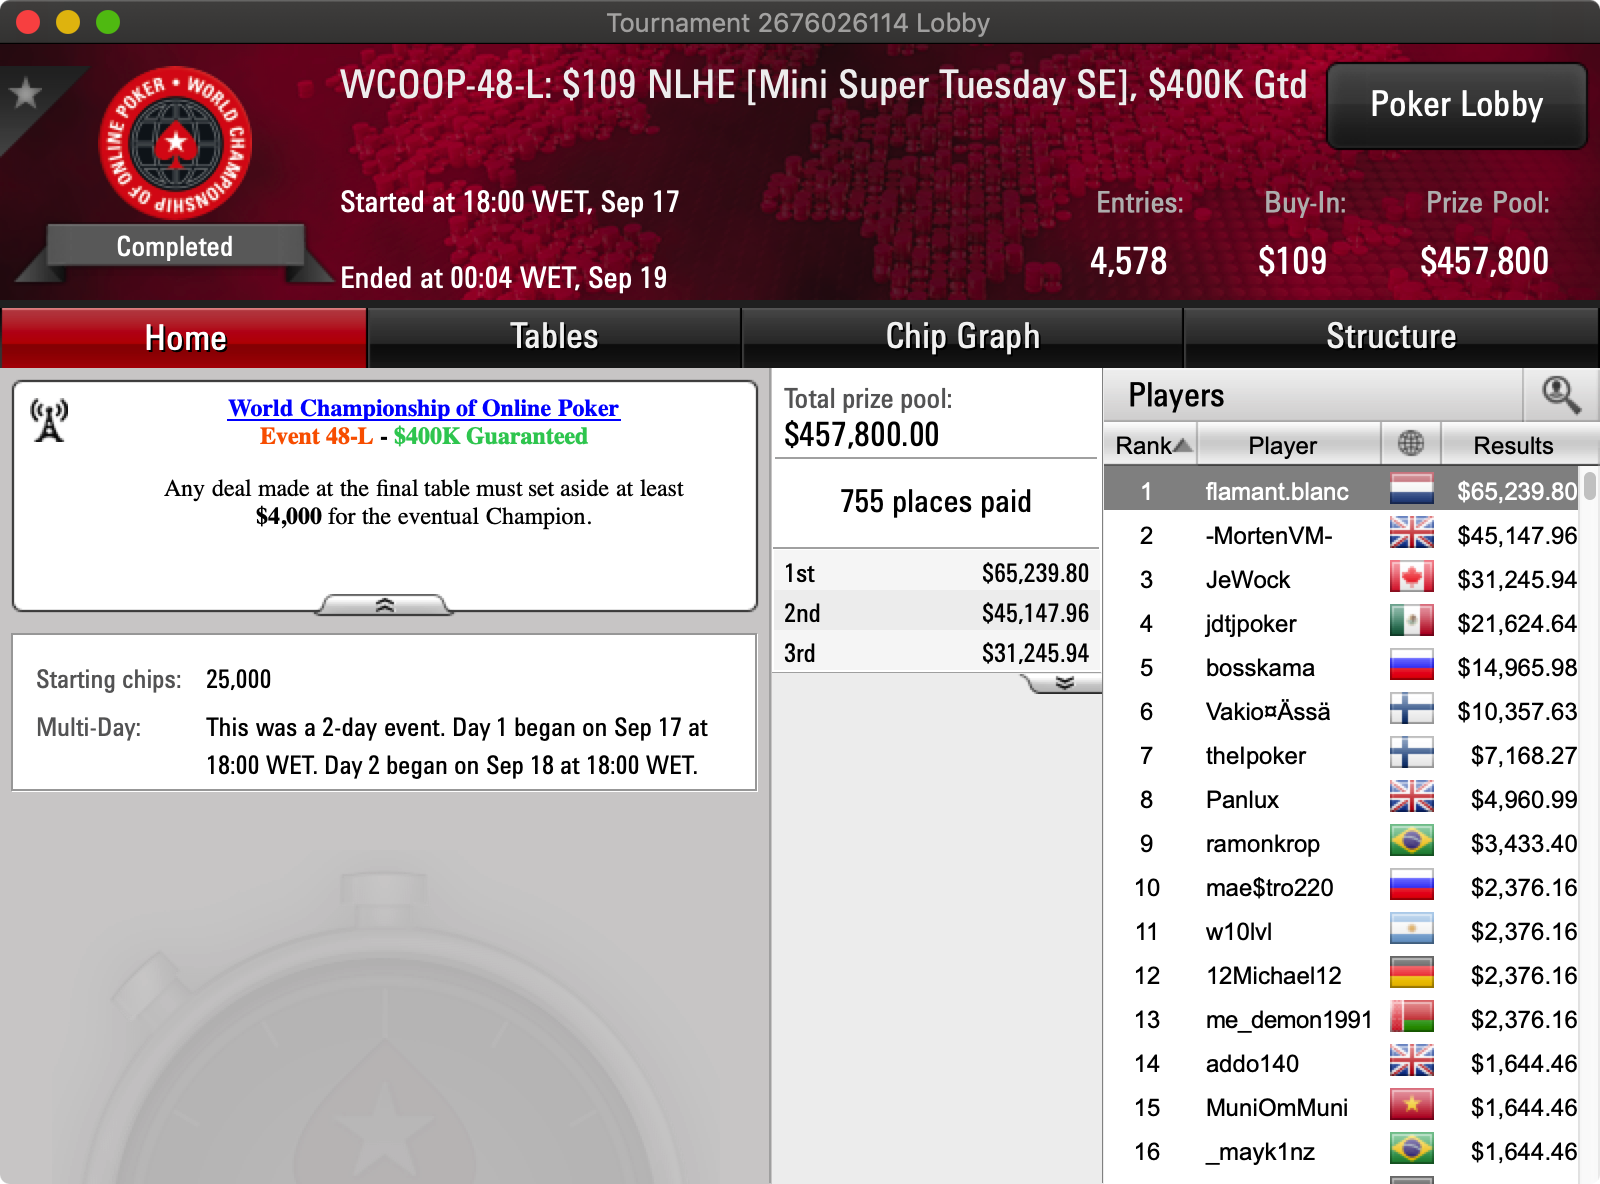 pokerstars wcoop #49 low